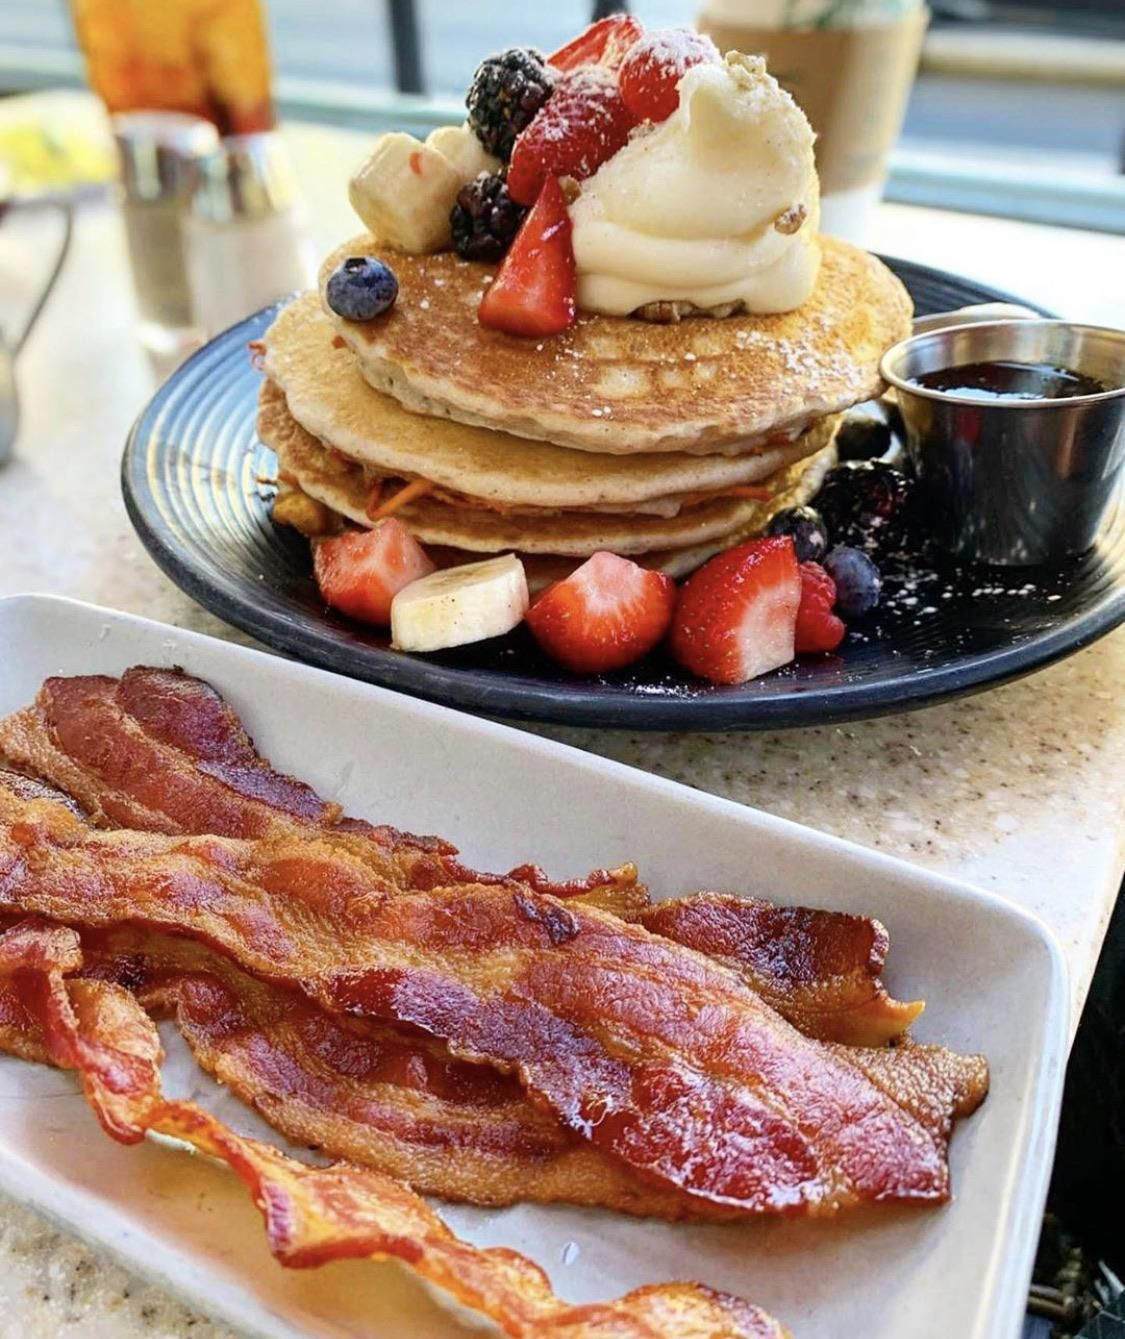 Buttermilk Pancakes And Bacon In 2020 Pancakes And Bacon Buttermilk Pancakes Food